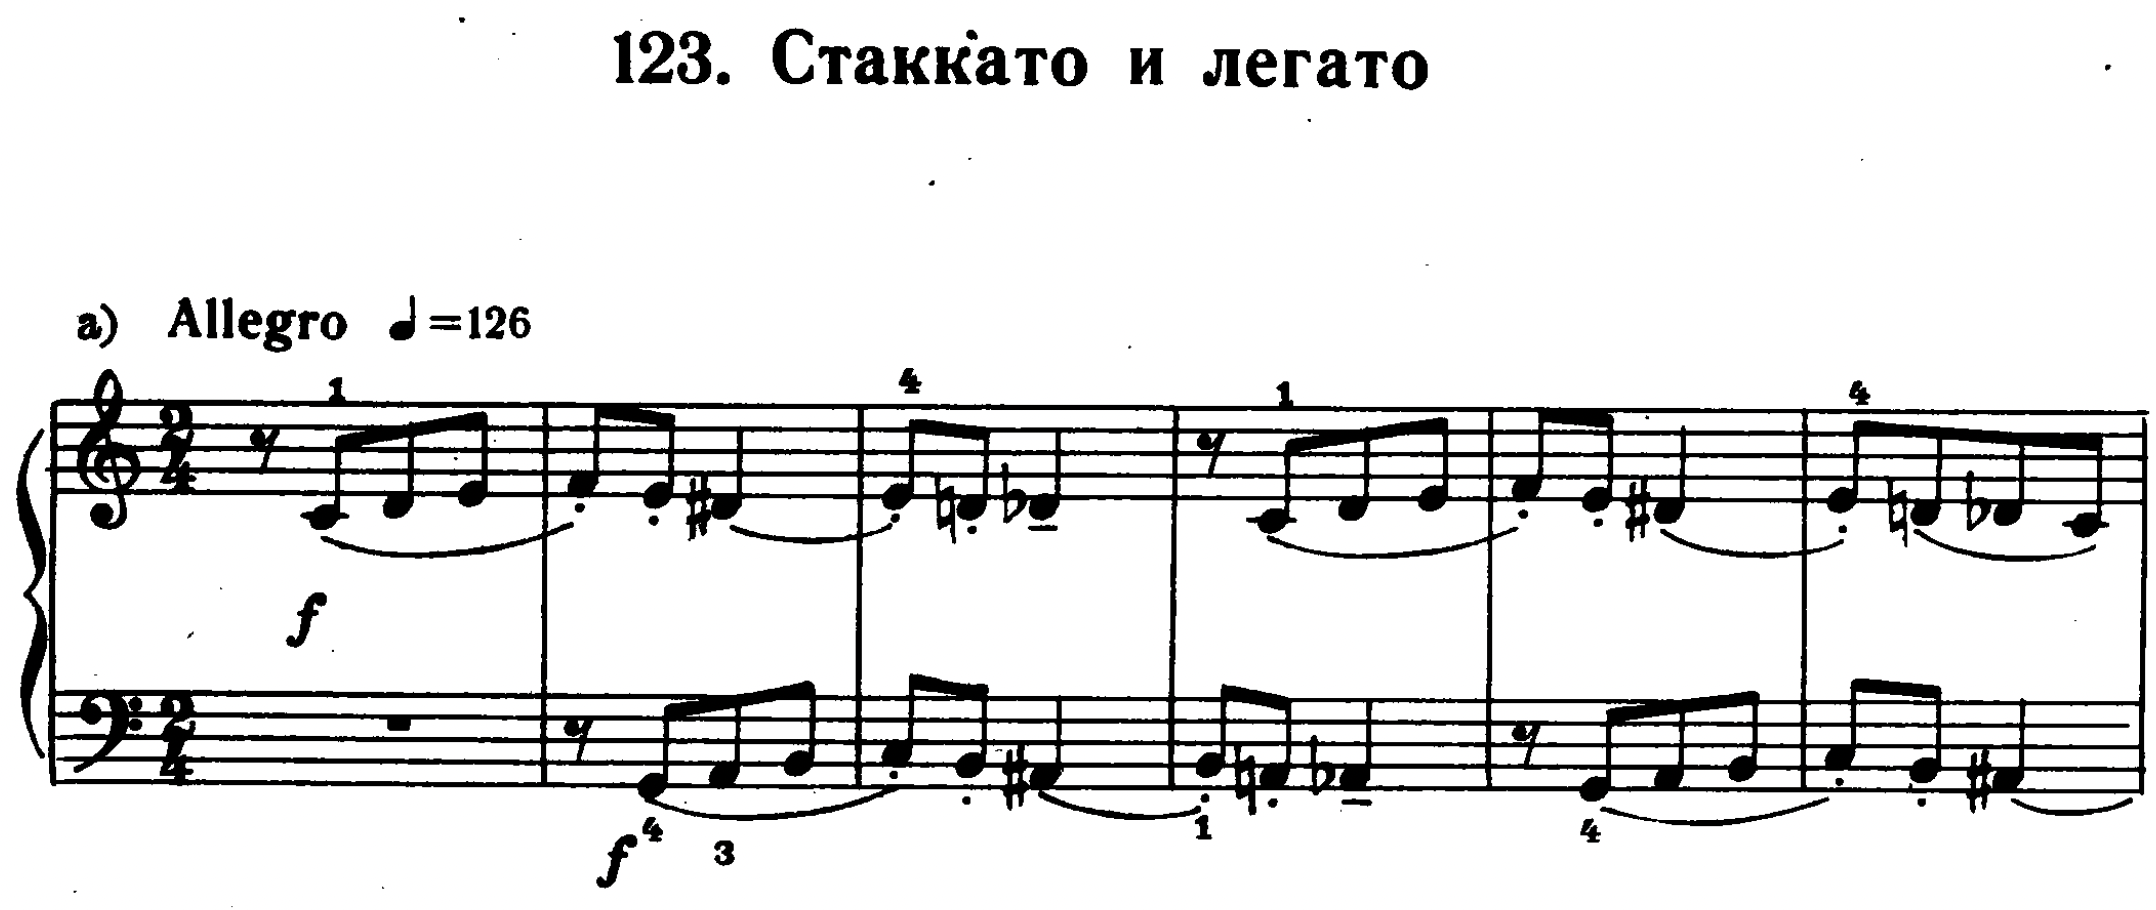 hand independence in Mikrokosmos Book 5